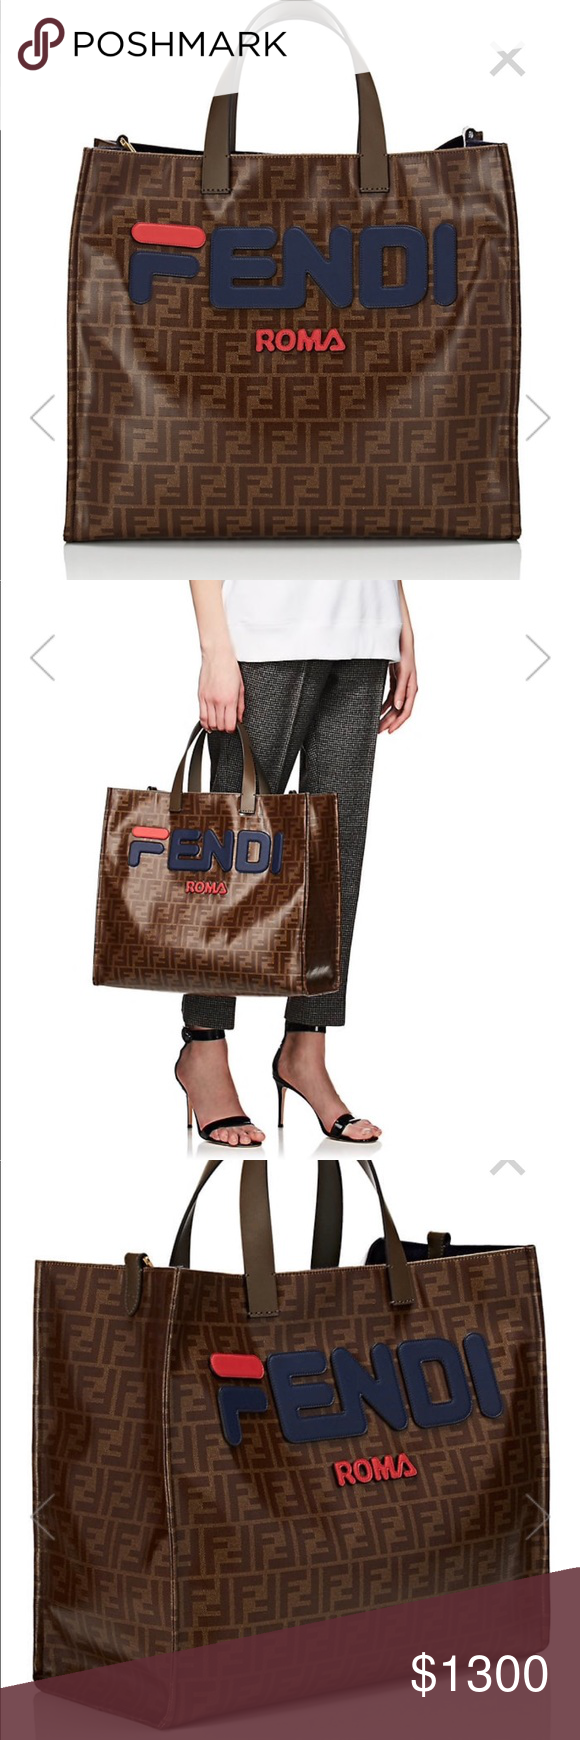 3c3117008f2 FENDI SMALL COATED CANVAS TOTE BAG BRAND NEW Fendi s Shopping small tote bag  is constructed of